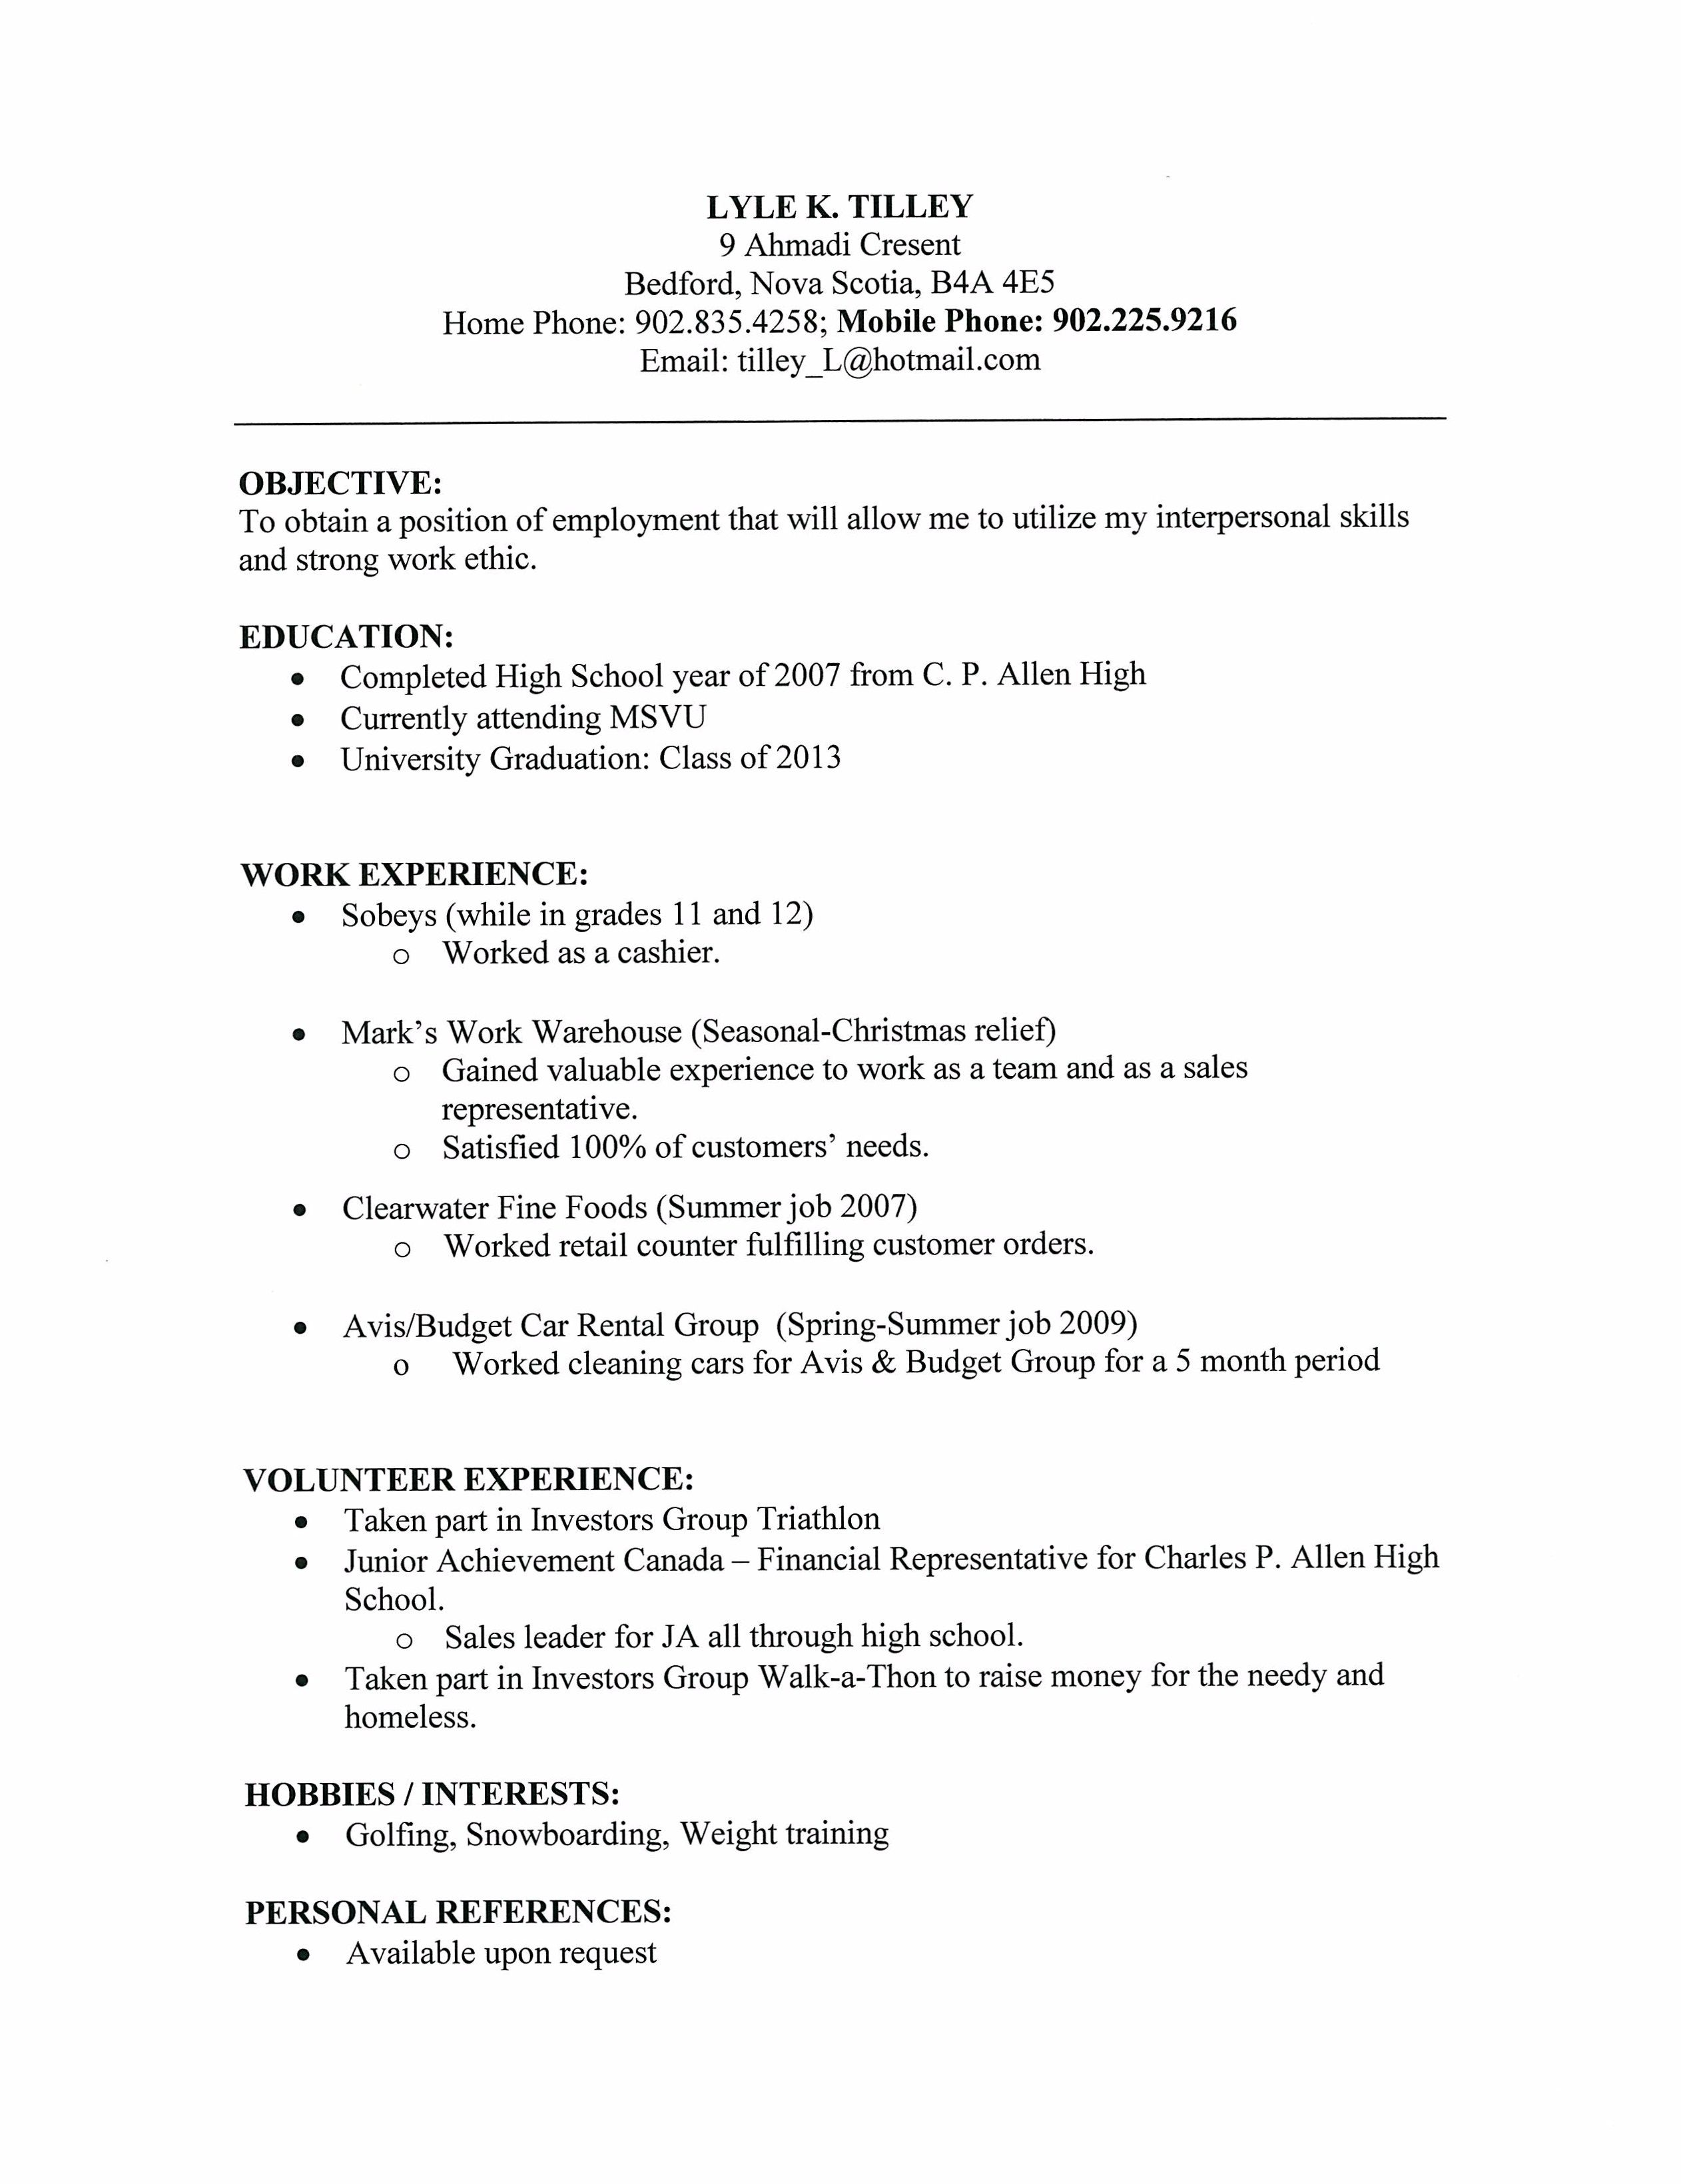 resume cover letter how to address when unknown resume